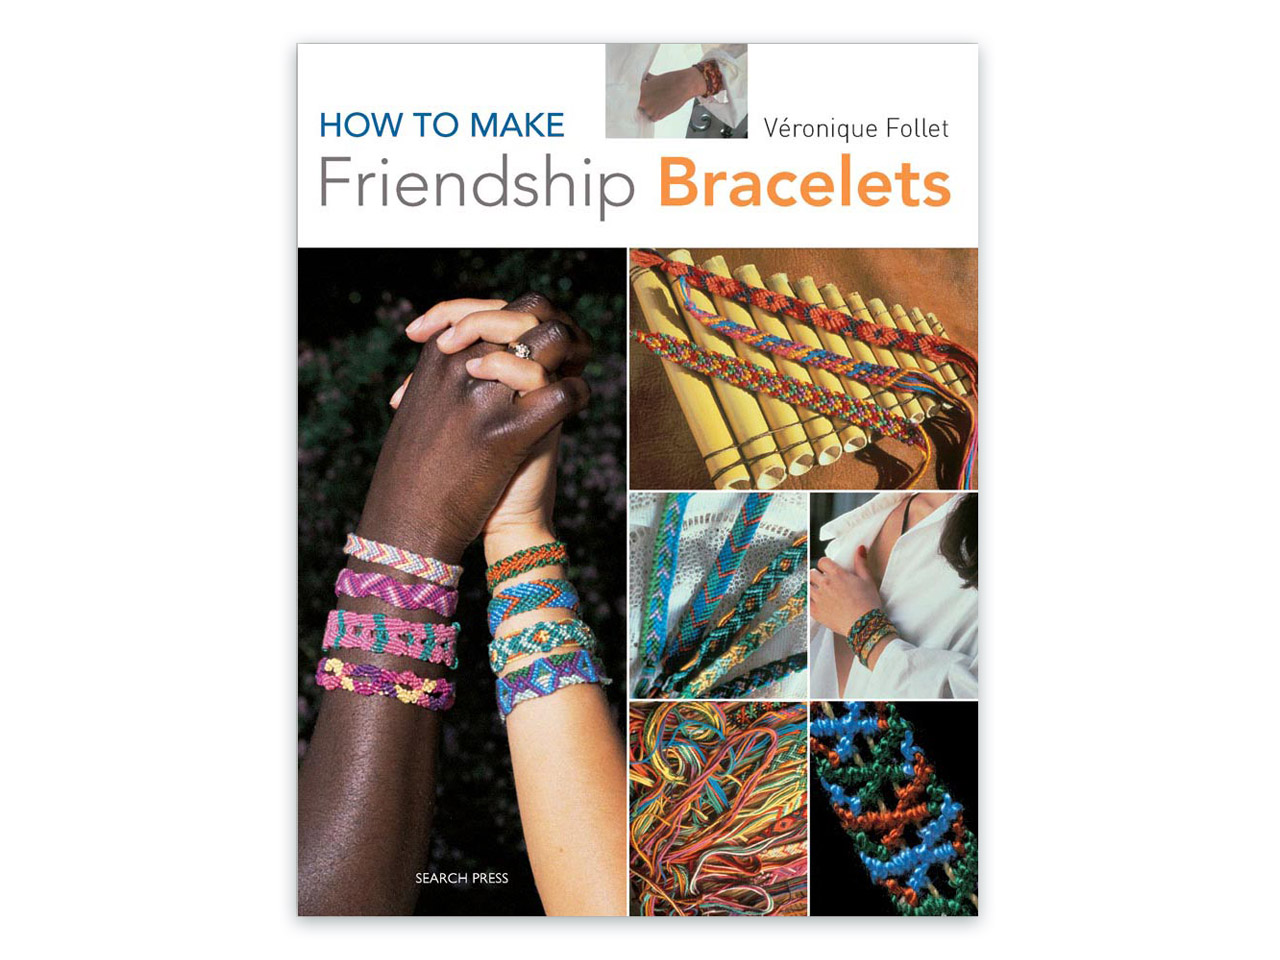 How To Make Friendship Bracelets By Veronique Follet